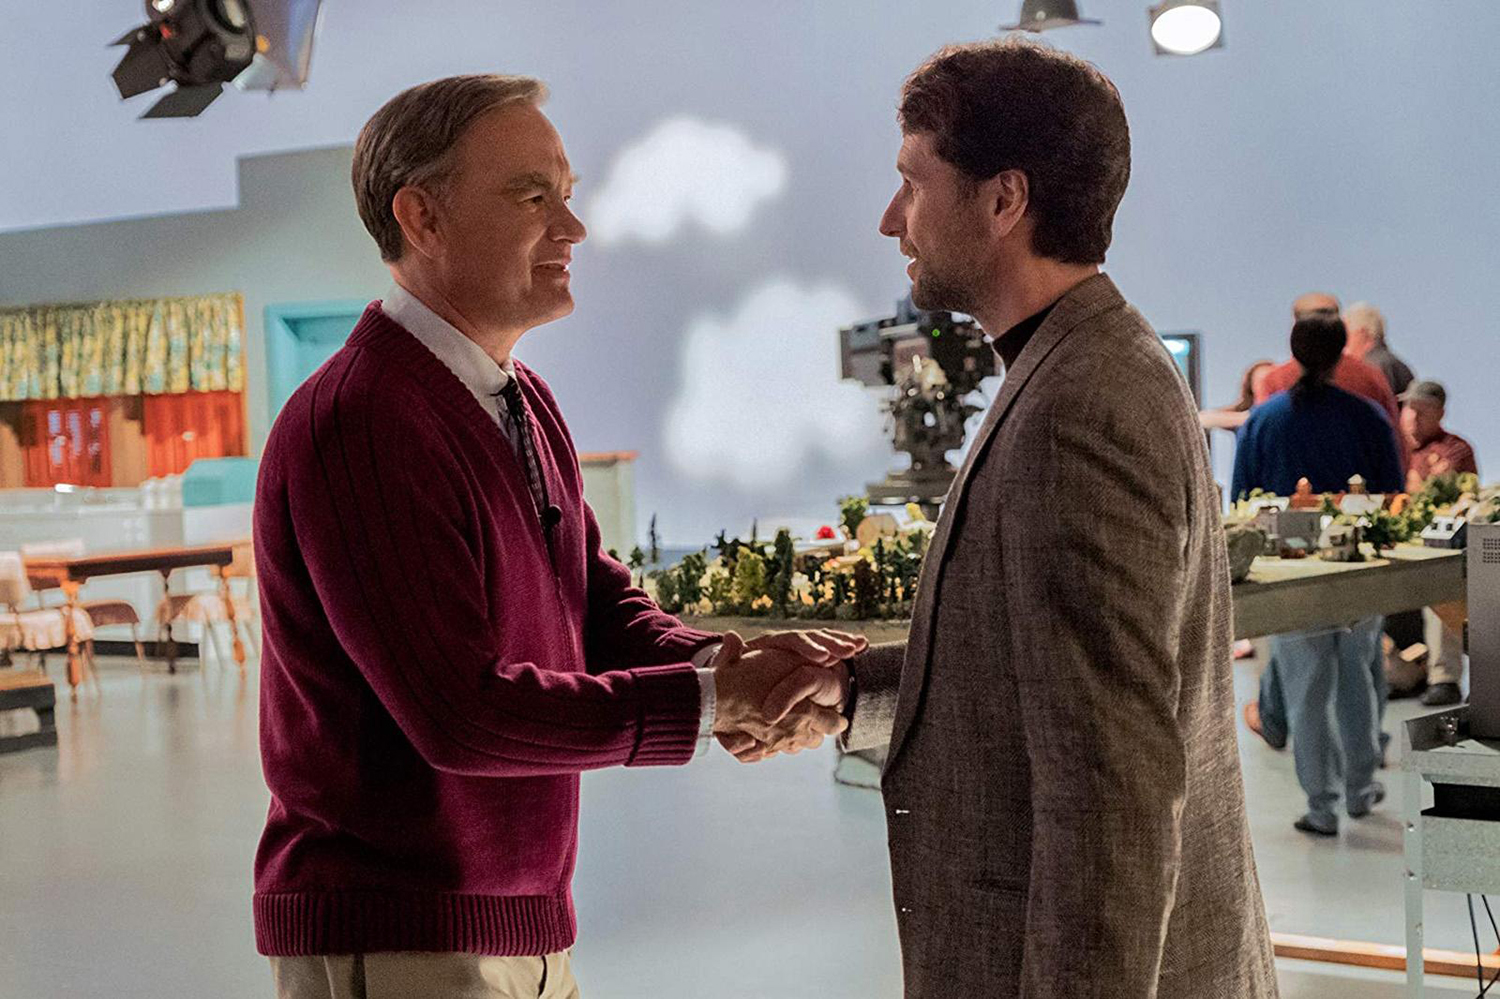 """Reassuring television host Fred Rogers (Tom Hanks) meets skeptical journalist Lloyd Vogel (Matthew Rhys) in director Marielle Heller's unconventional biopic, """"A Beautiful Day in the Neighborhood."""" [Lacey Terrell/Sony Pictures/TNS]"""